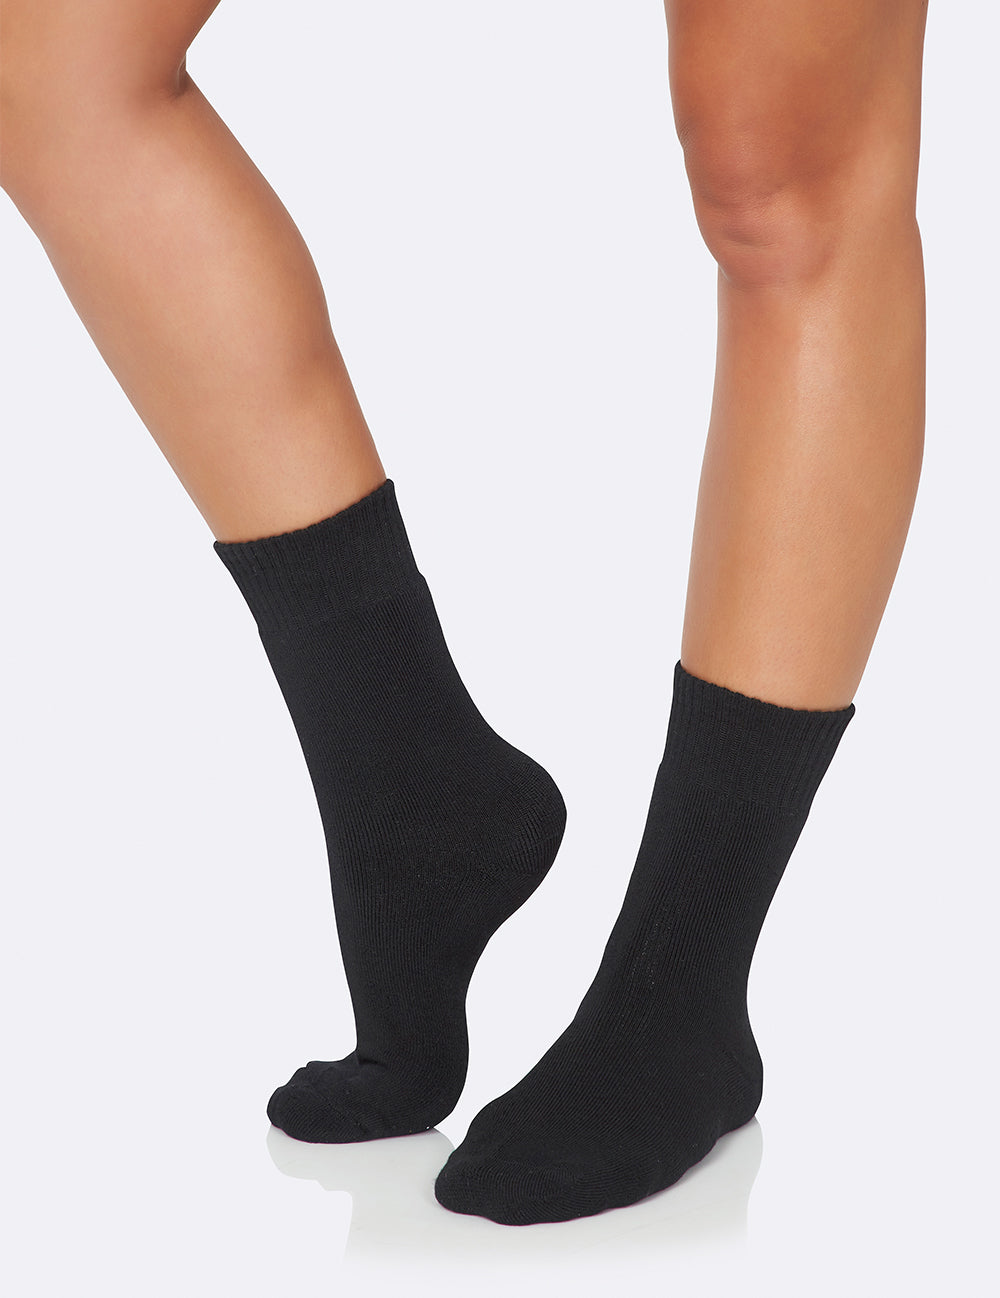 Women's Crew Boot Socks - Black/34-40